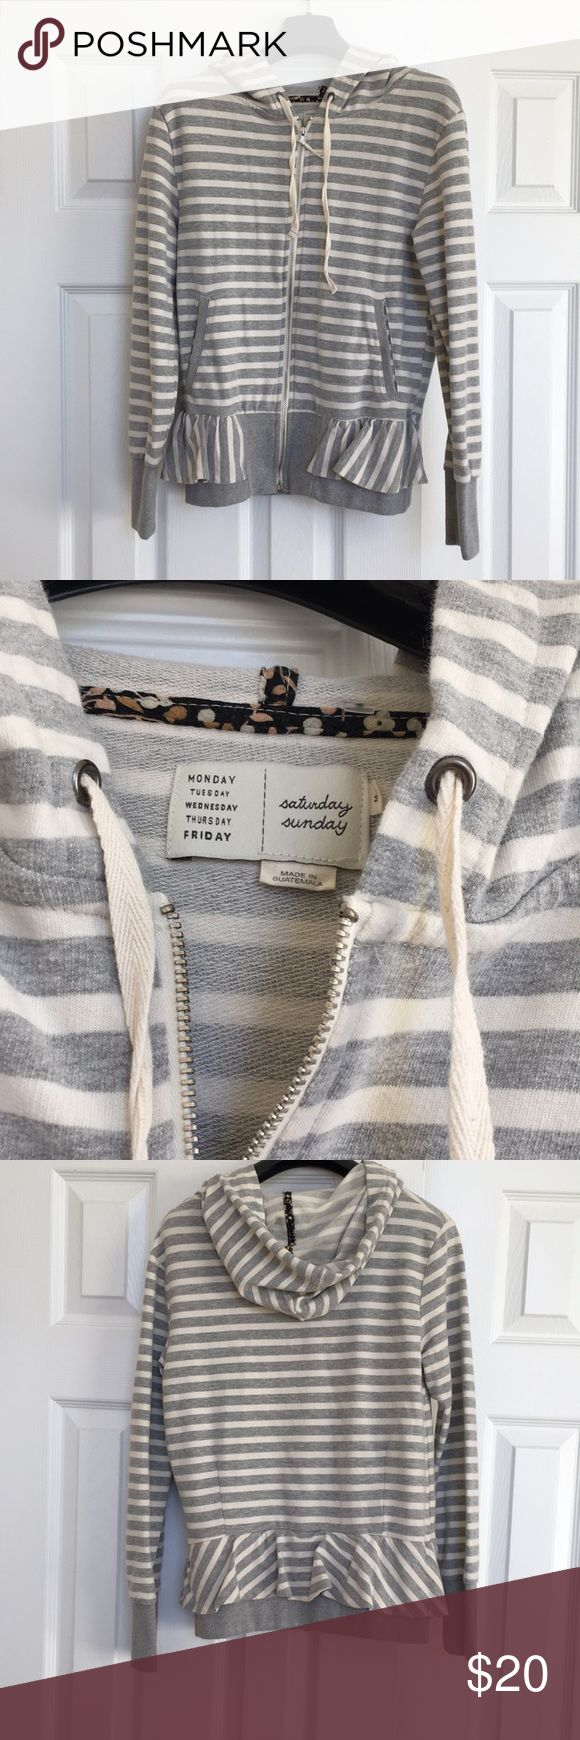 Anthropologie Striped Zip Up Hoodie Anthropologie zip up hoodie by Saturday Sunday. Gray and white striped with an adorable ruffle along the bottom. Like new condition. Anthropologie Jackets & Coats